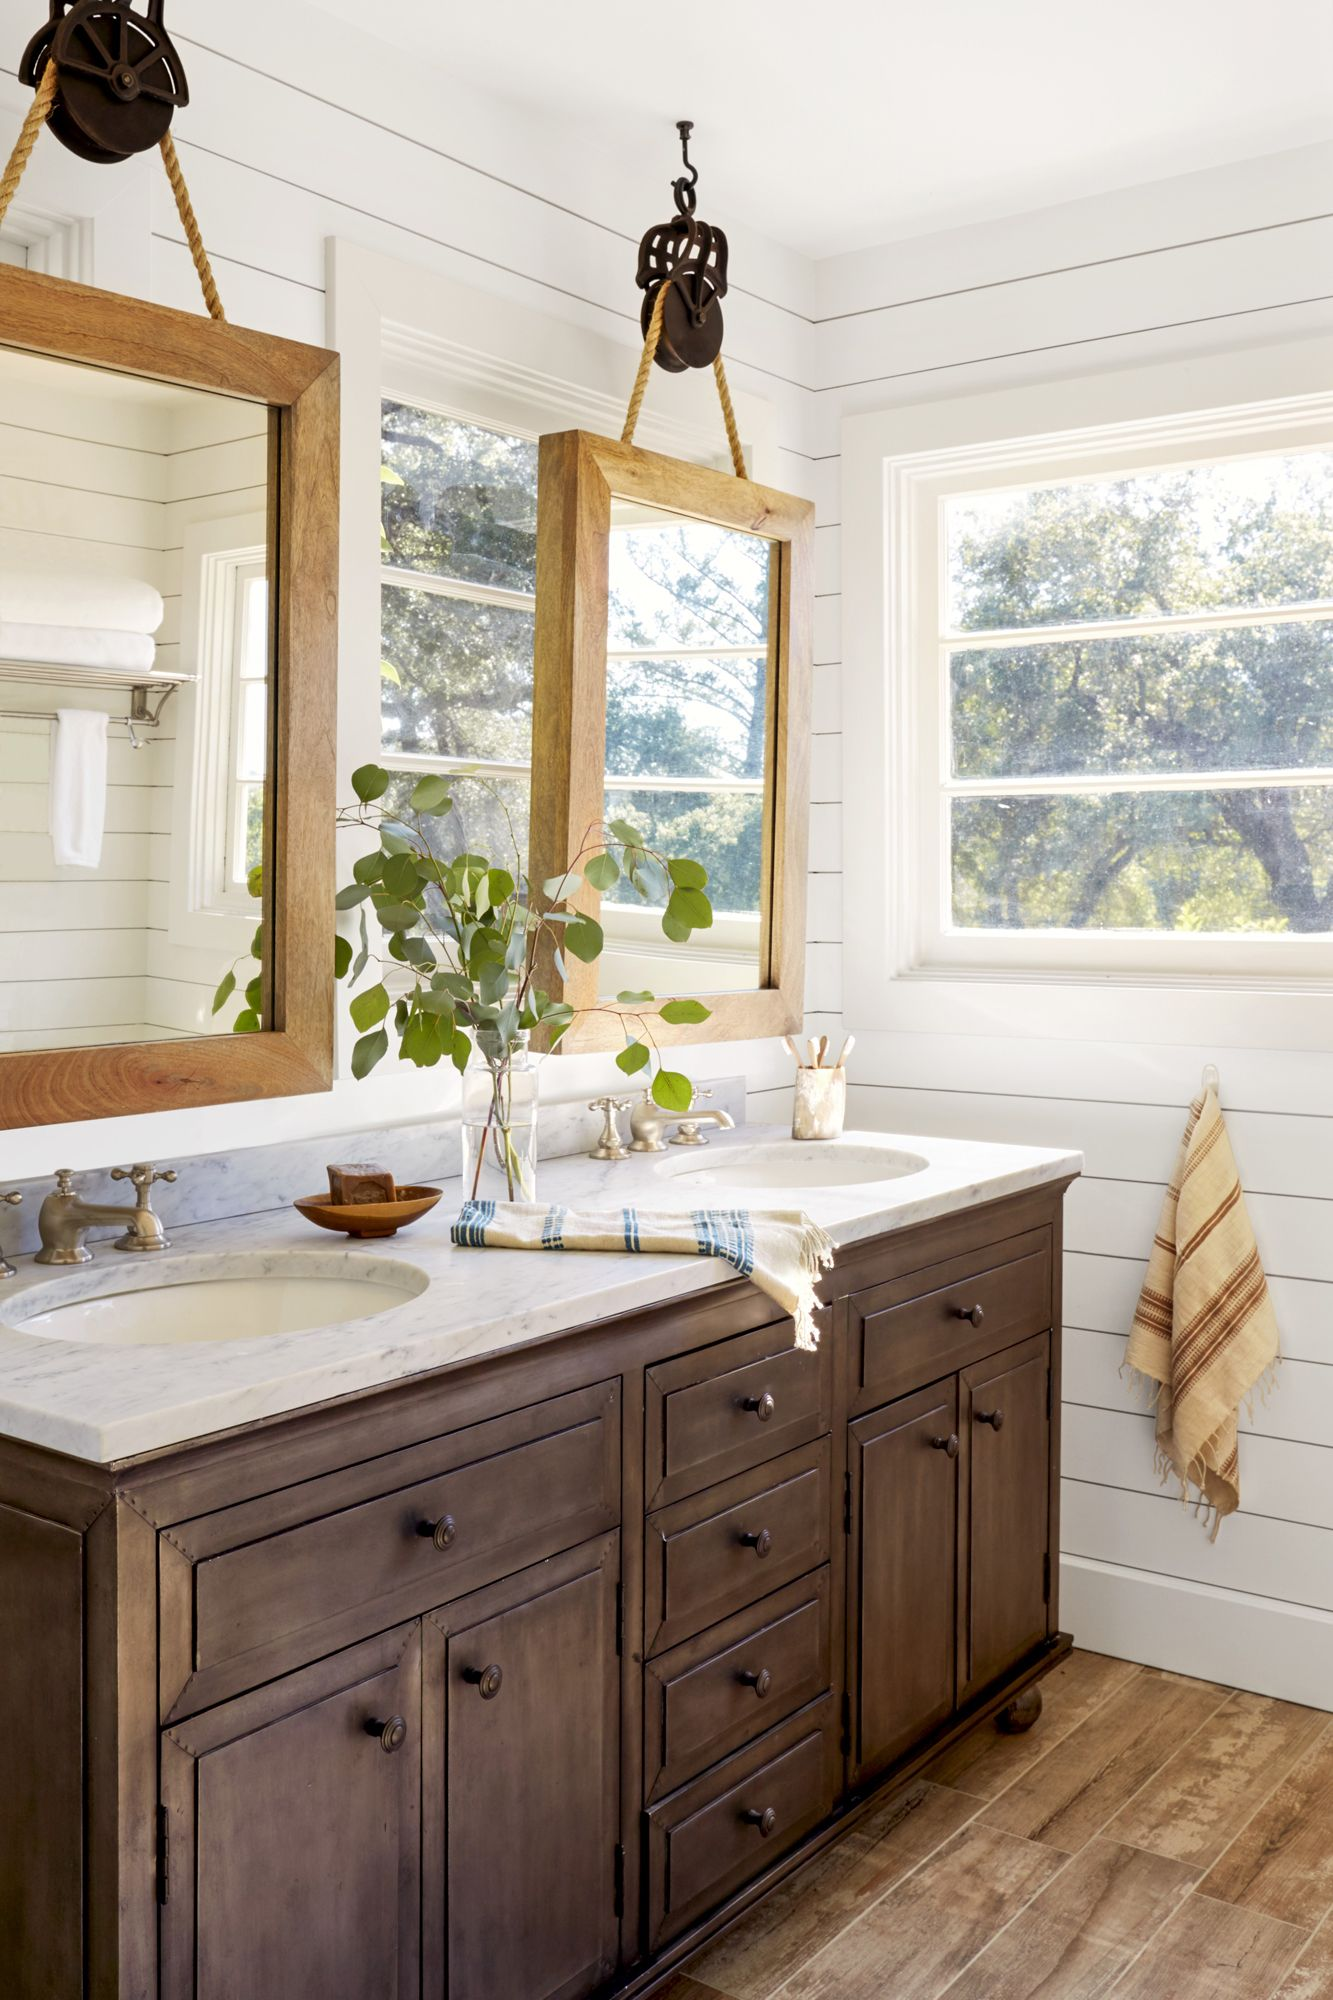 23 bathroom decorating ideas pictures of bathroom decor and designs rh goodhousekeeping com